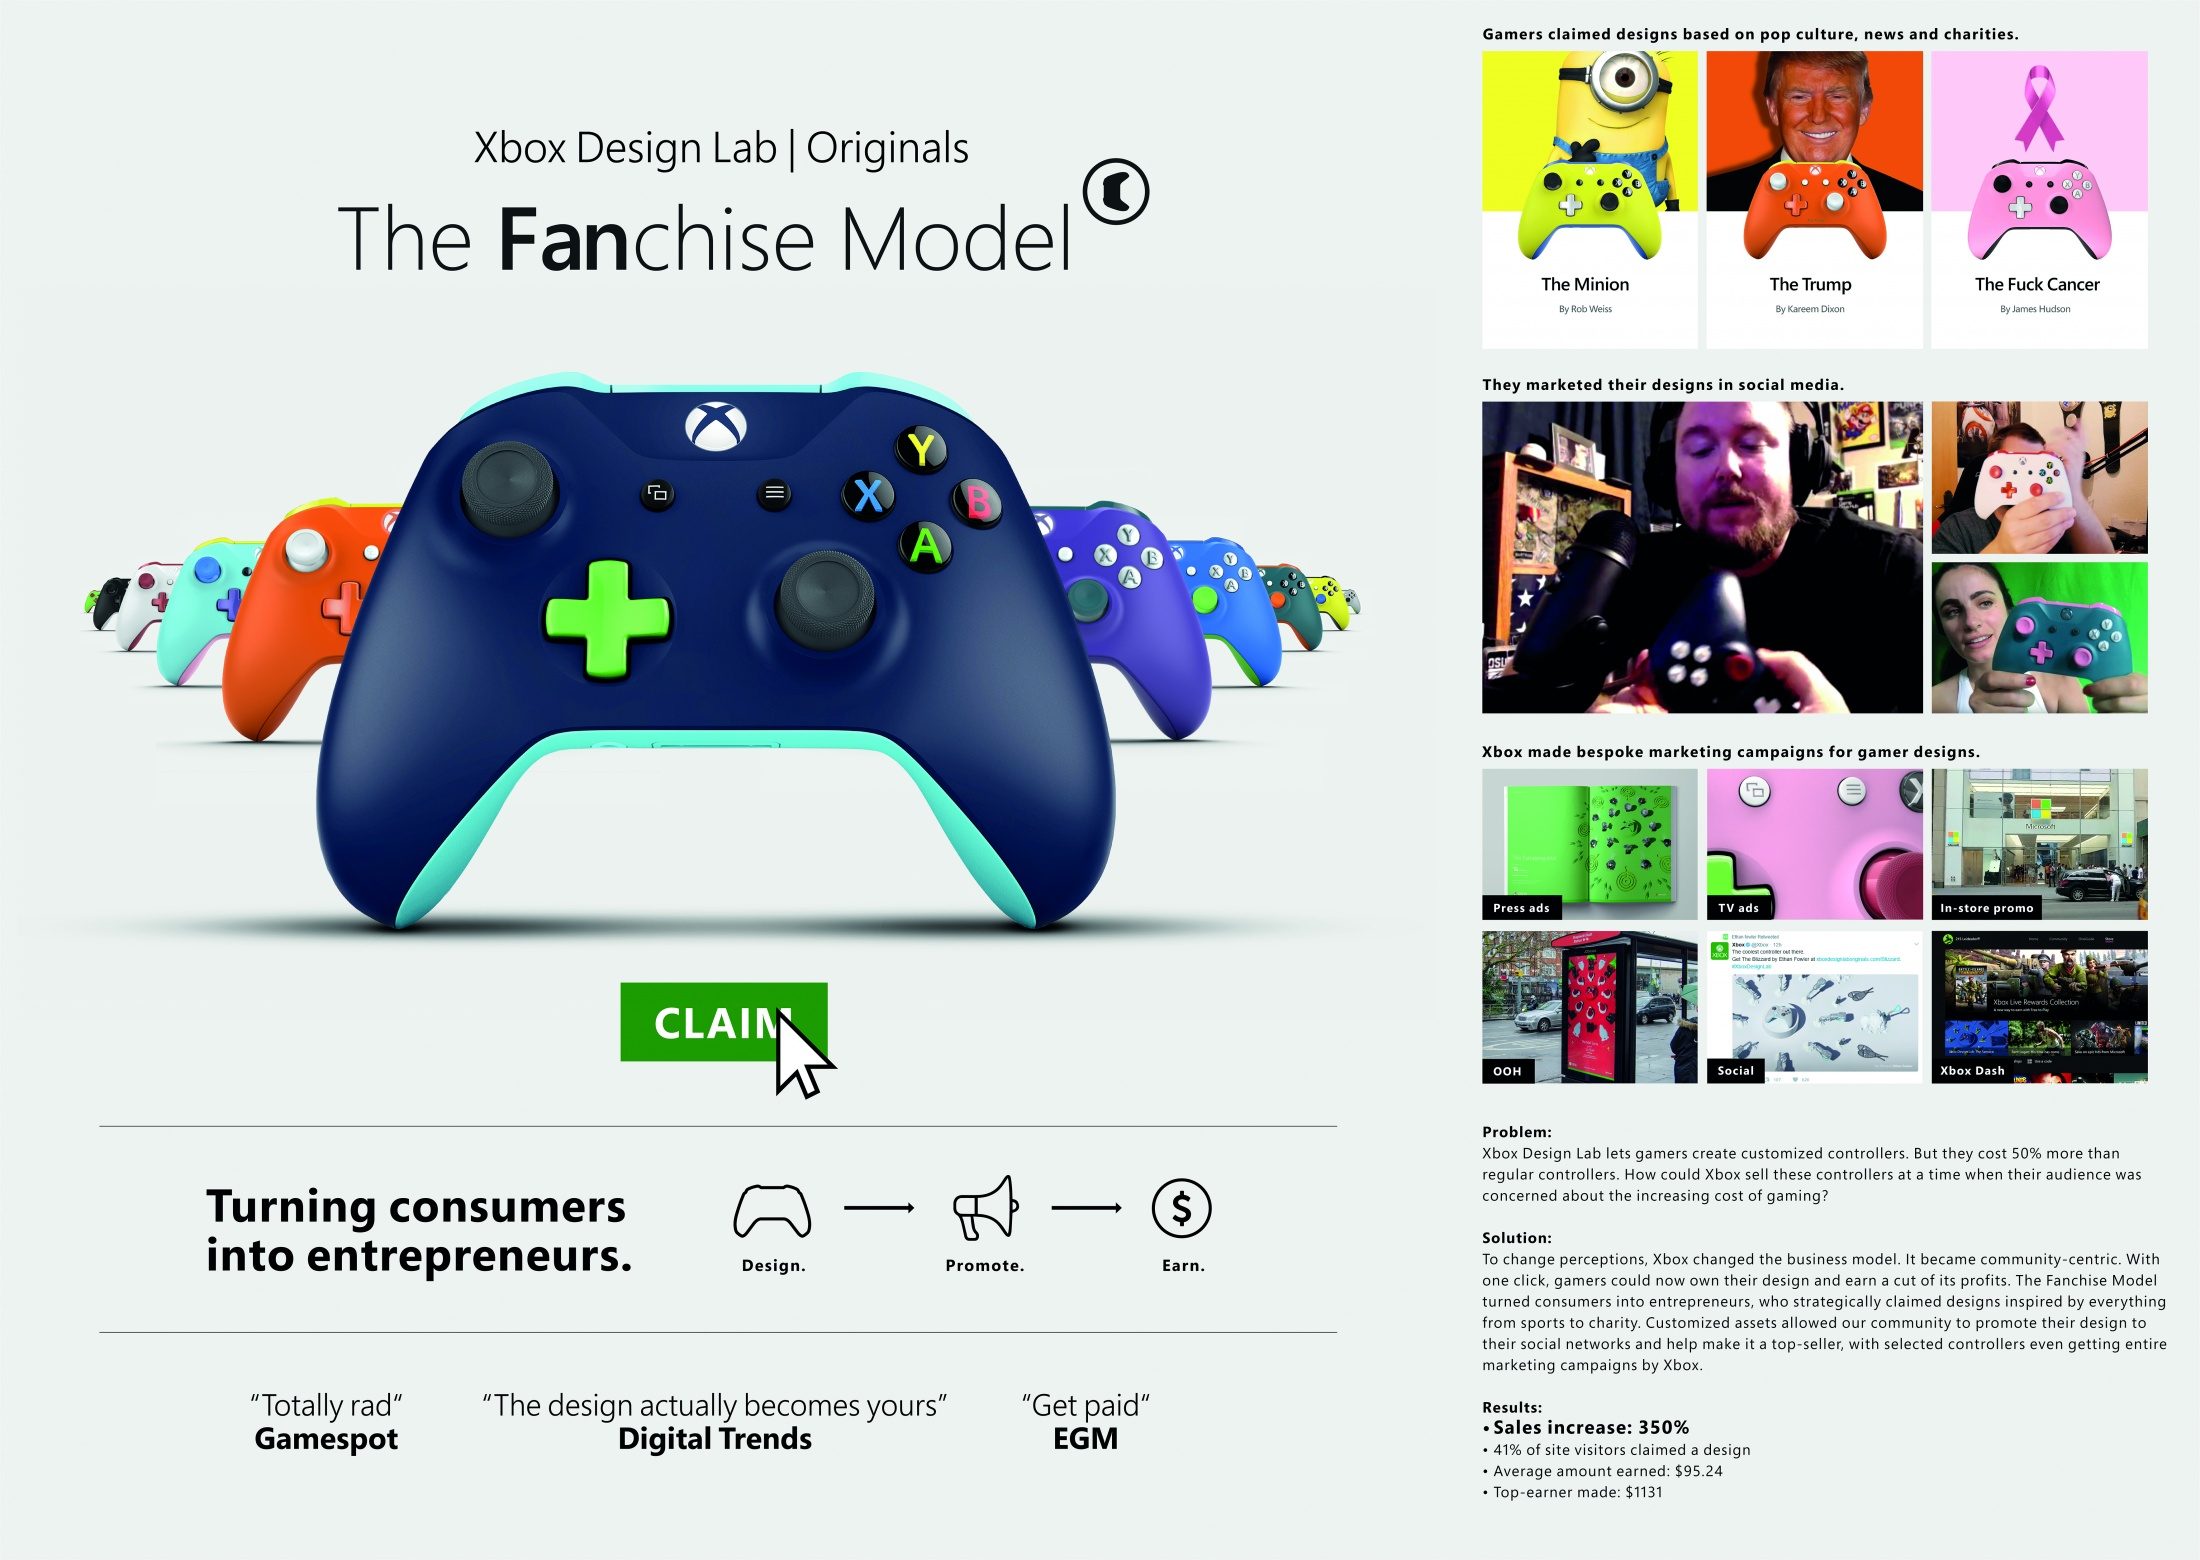 Image Media for Xbox Design Lab Originals: The Fanchise Model